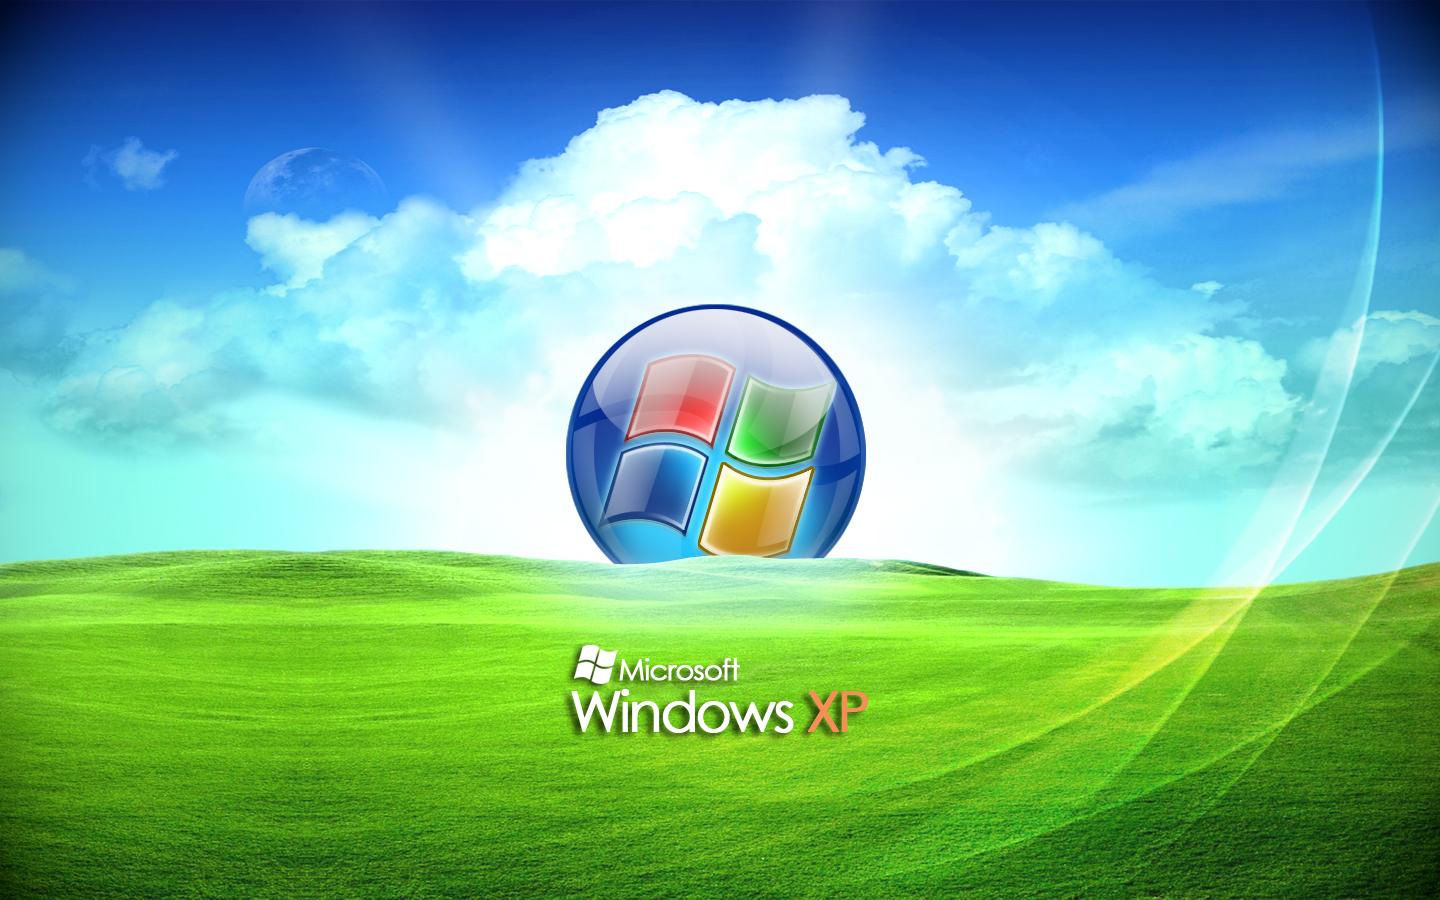 Windows XP Bliss Wallpaper Location  WallpaperSafari